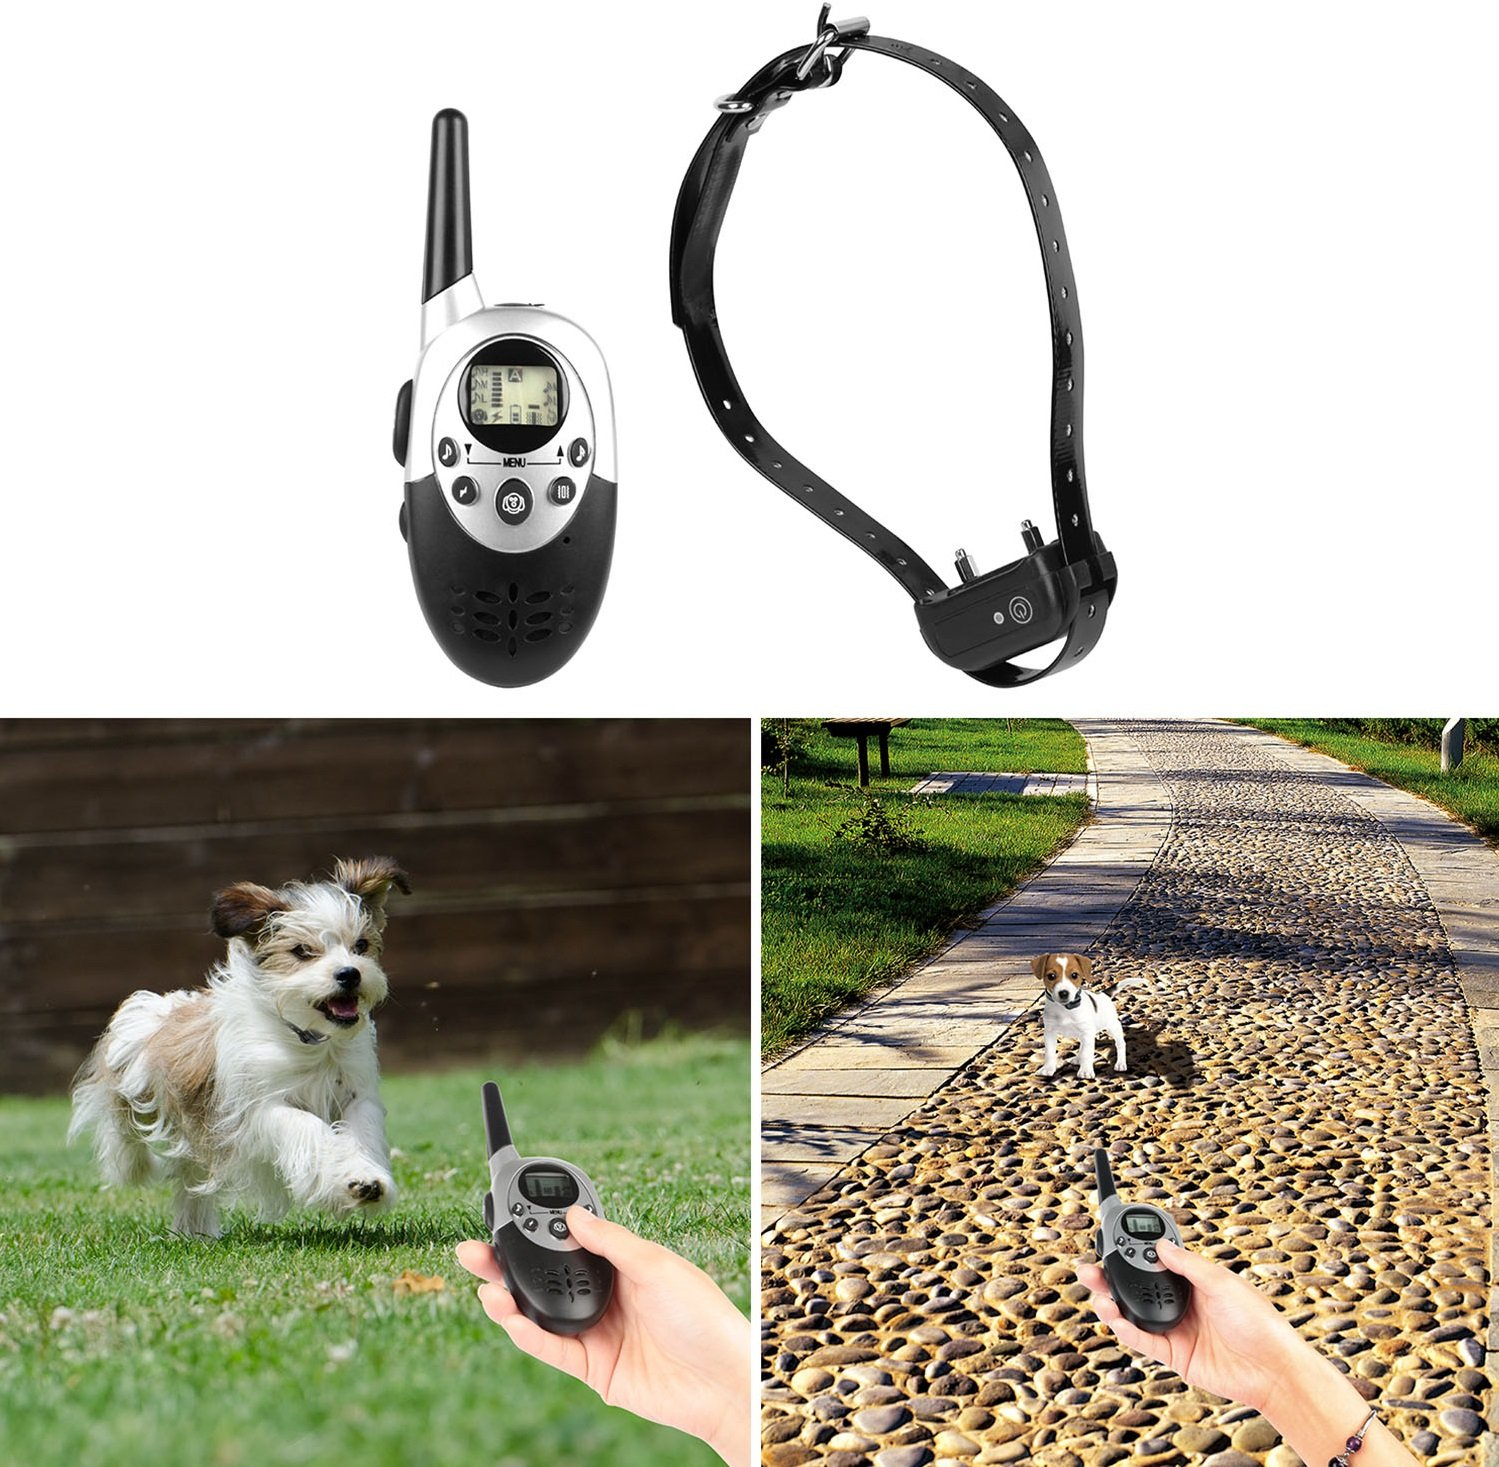 GPCT Rechargeable [Waterproof] Adjustable Dog Training Collar Remote. 500 Yard Range, 3 Modes Correction 8 Levels of Shock Dog Collar W Beep Vibration Shock Electric E-Collar Trainer- All Size Dogs